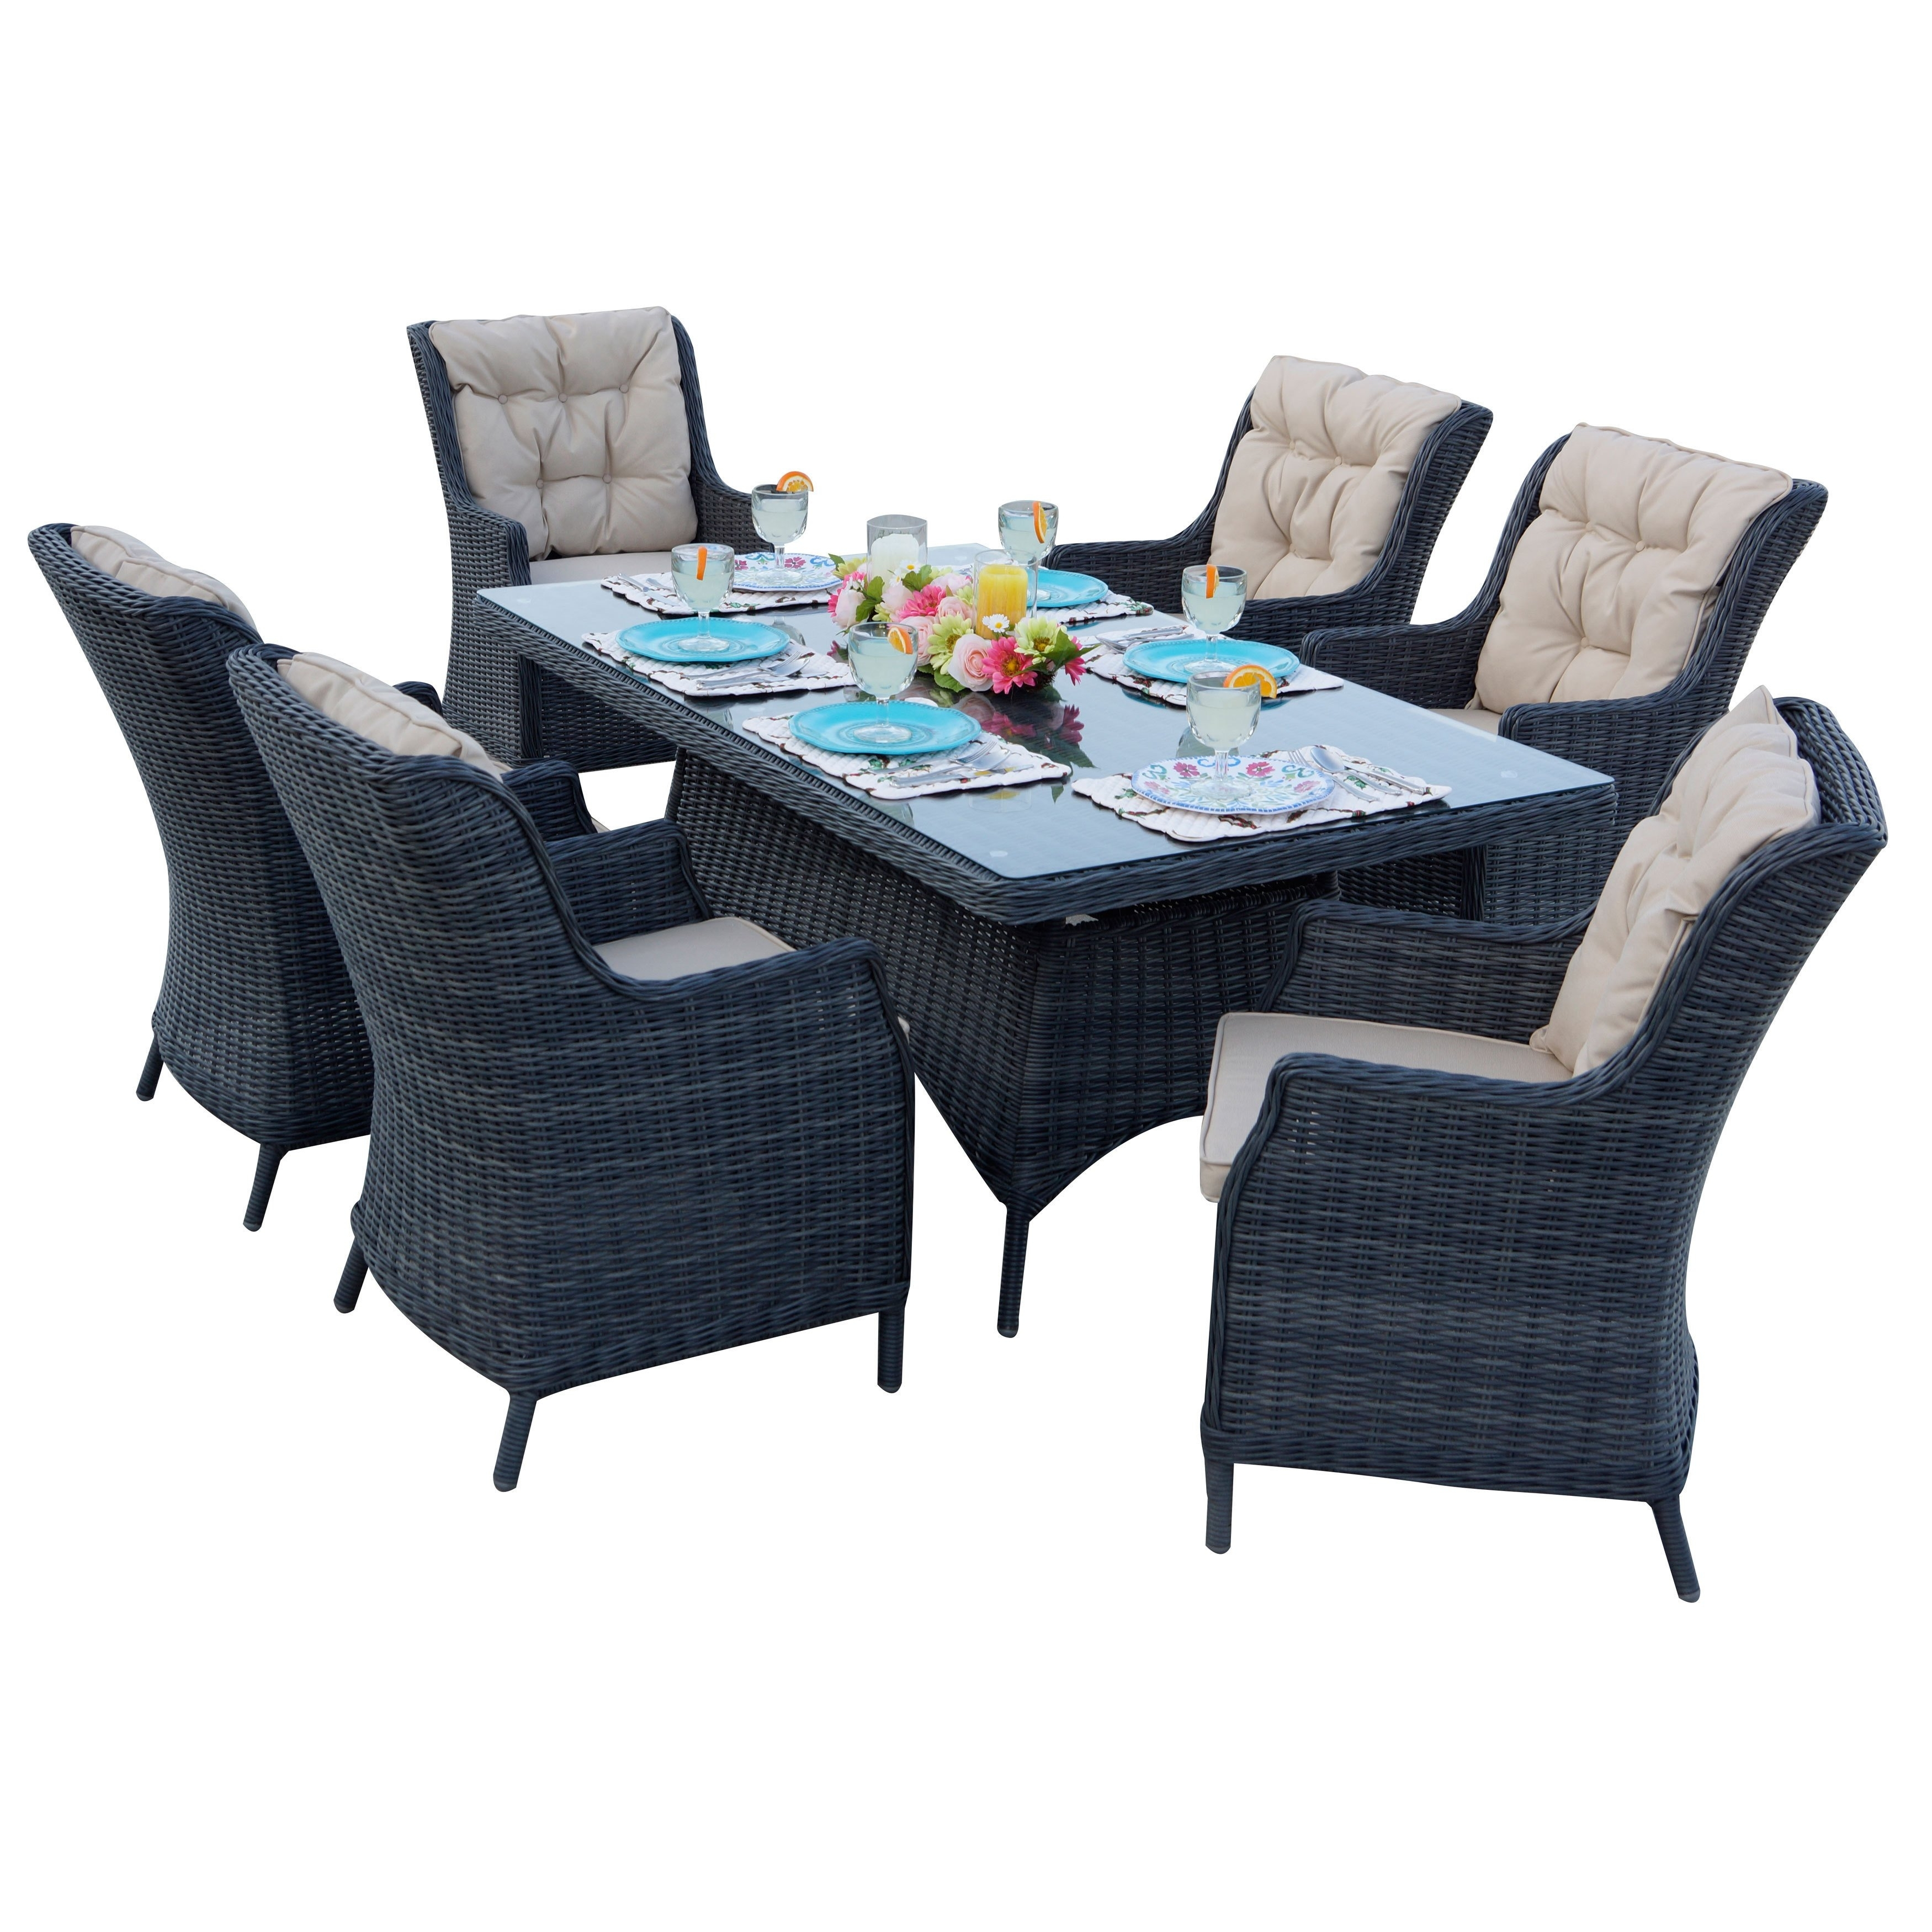 Darlee Valencia Black Resin Wicker Dining Set | Ebay Intended For 2018 Valencia 72 Inch 7 Piece Dining Sets (View 5 of 20)